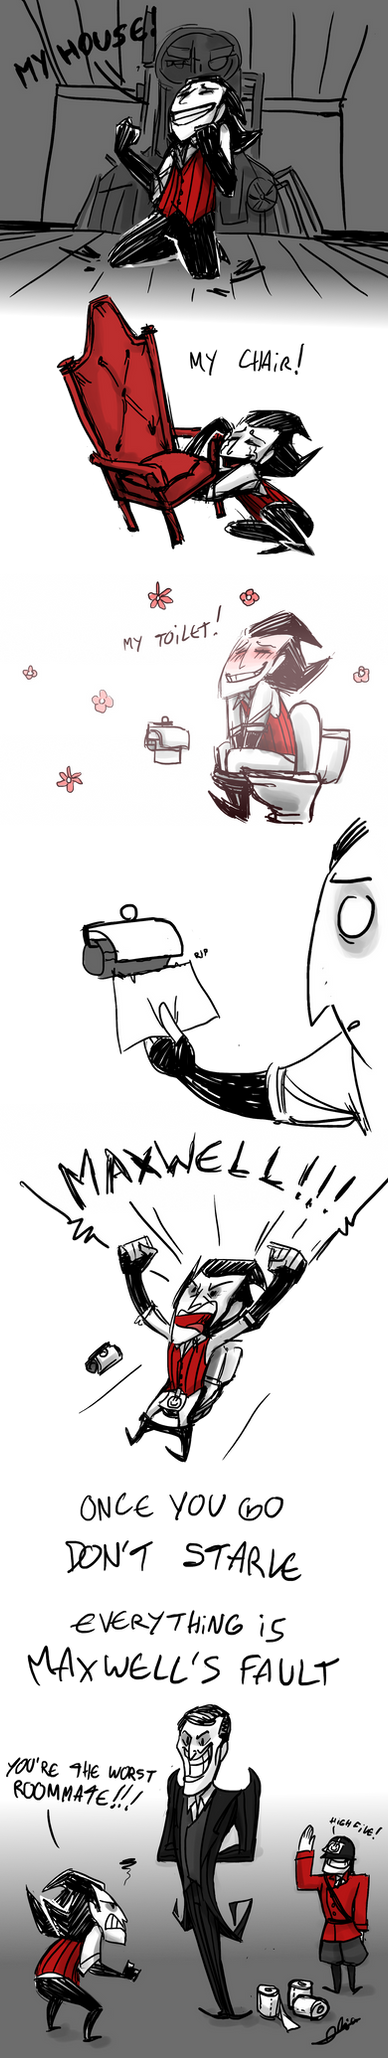 Maxwell's Fault by TFresistance